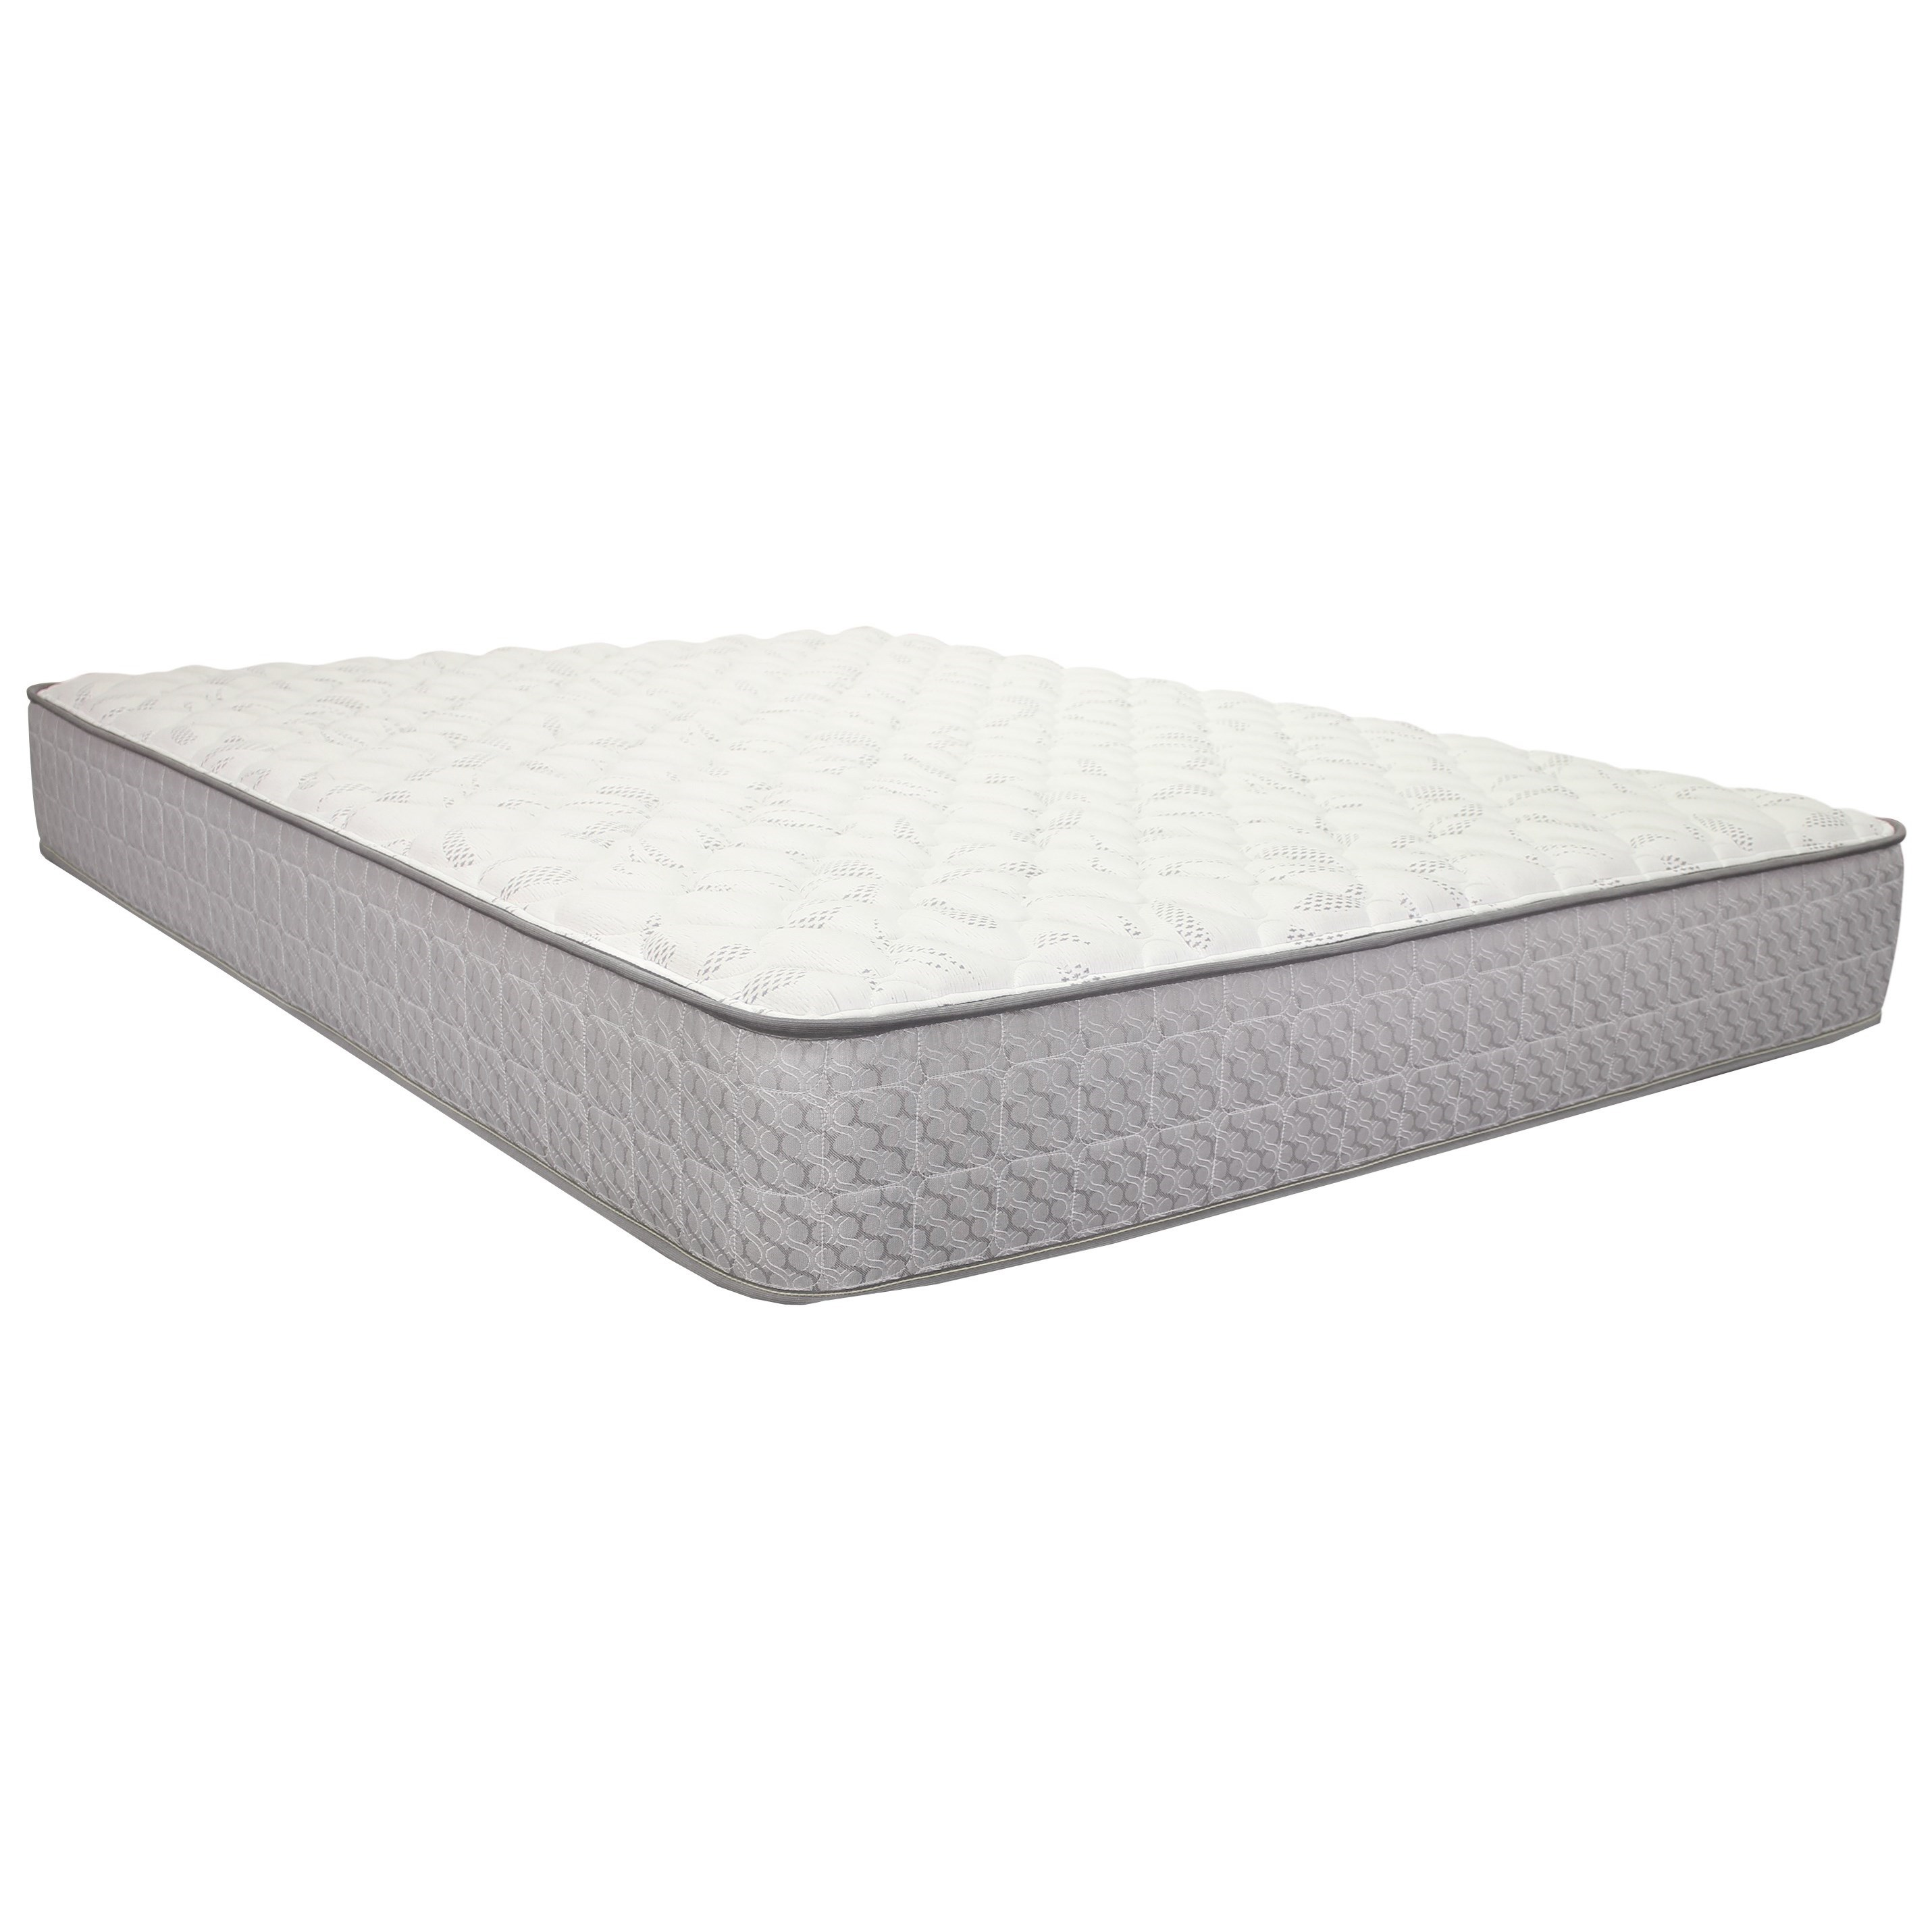 "Queen 10 1/2"" Firm Innerspring Mattress"